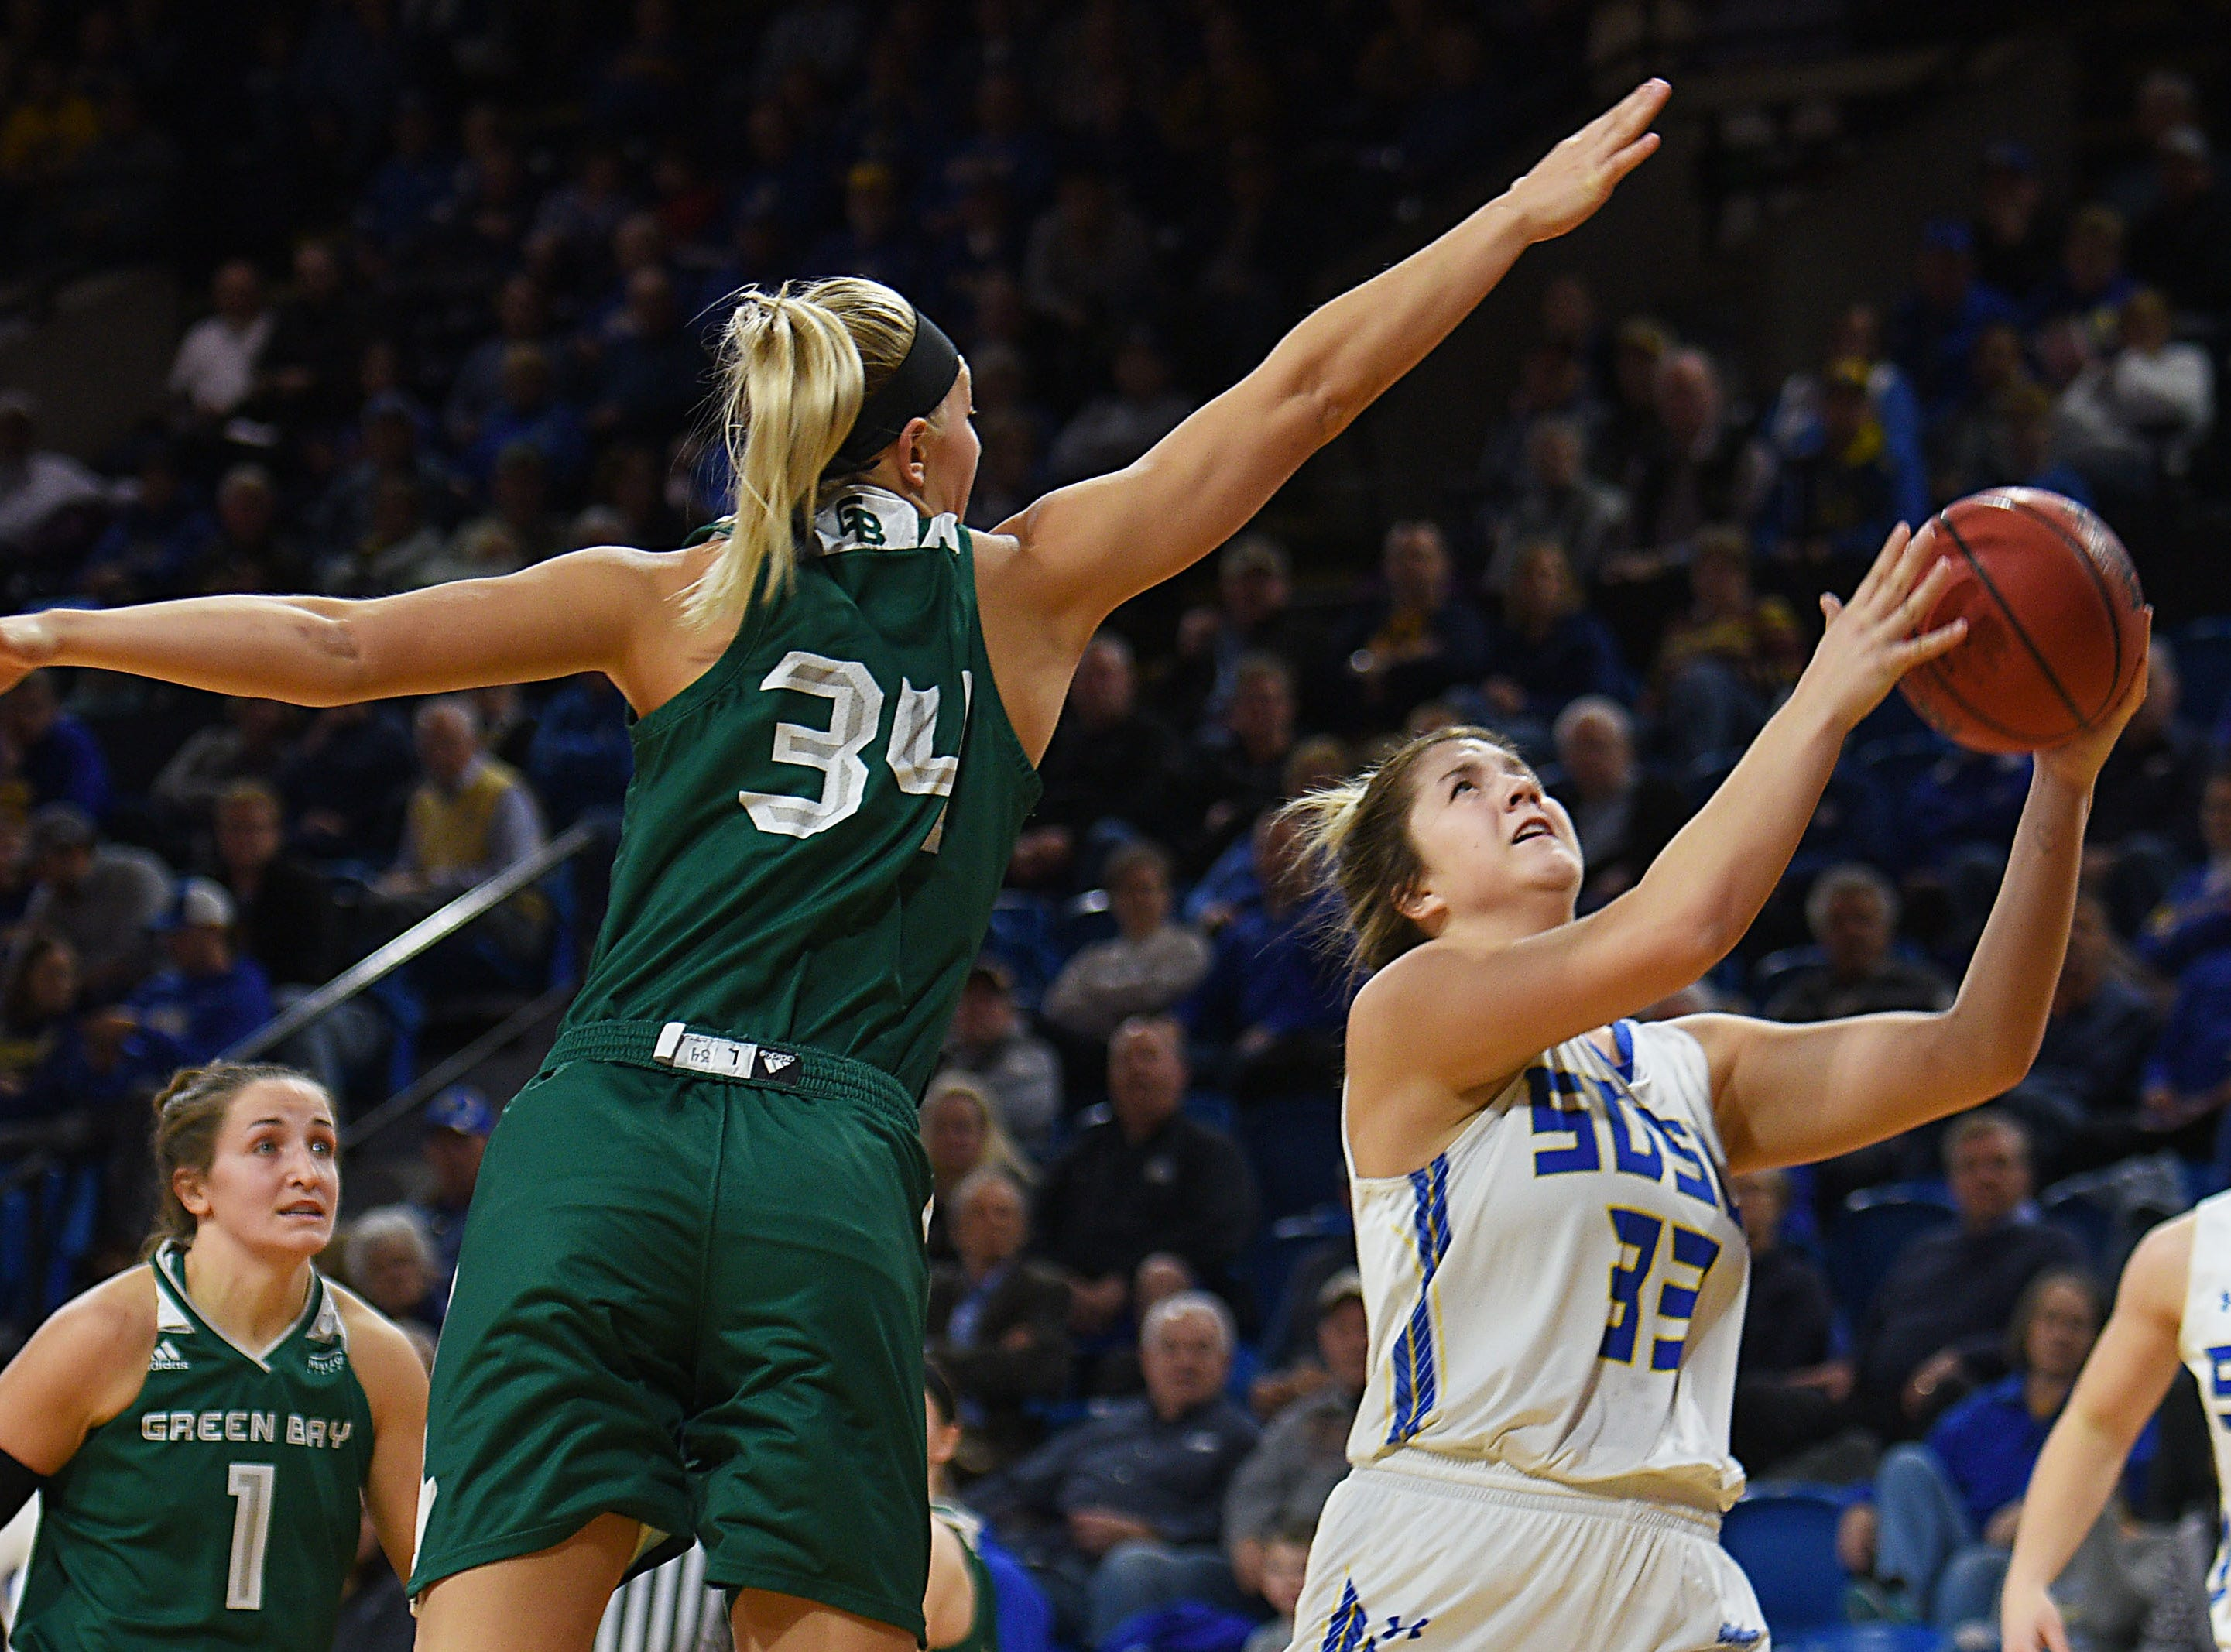 SDSU's Paiton Burckhard goes against Green Bay defense during the game Thursday, Nov. 29, at Frost Arena in Brookings.